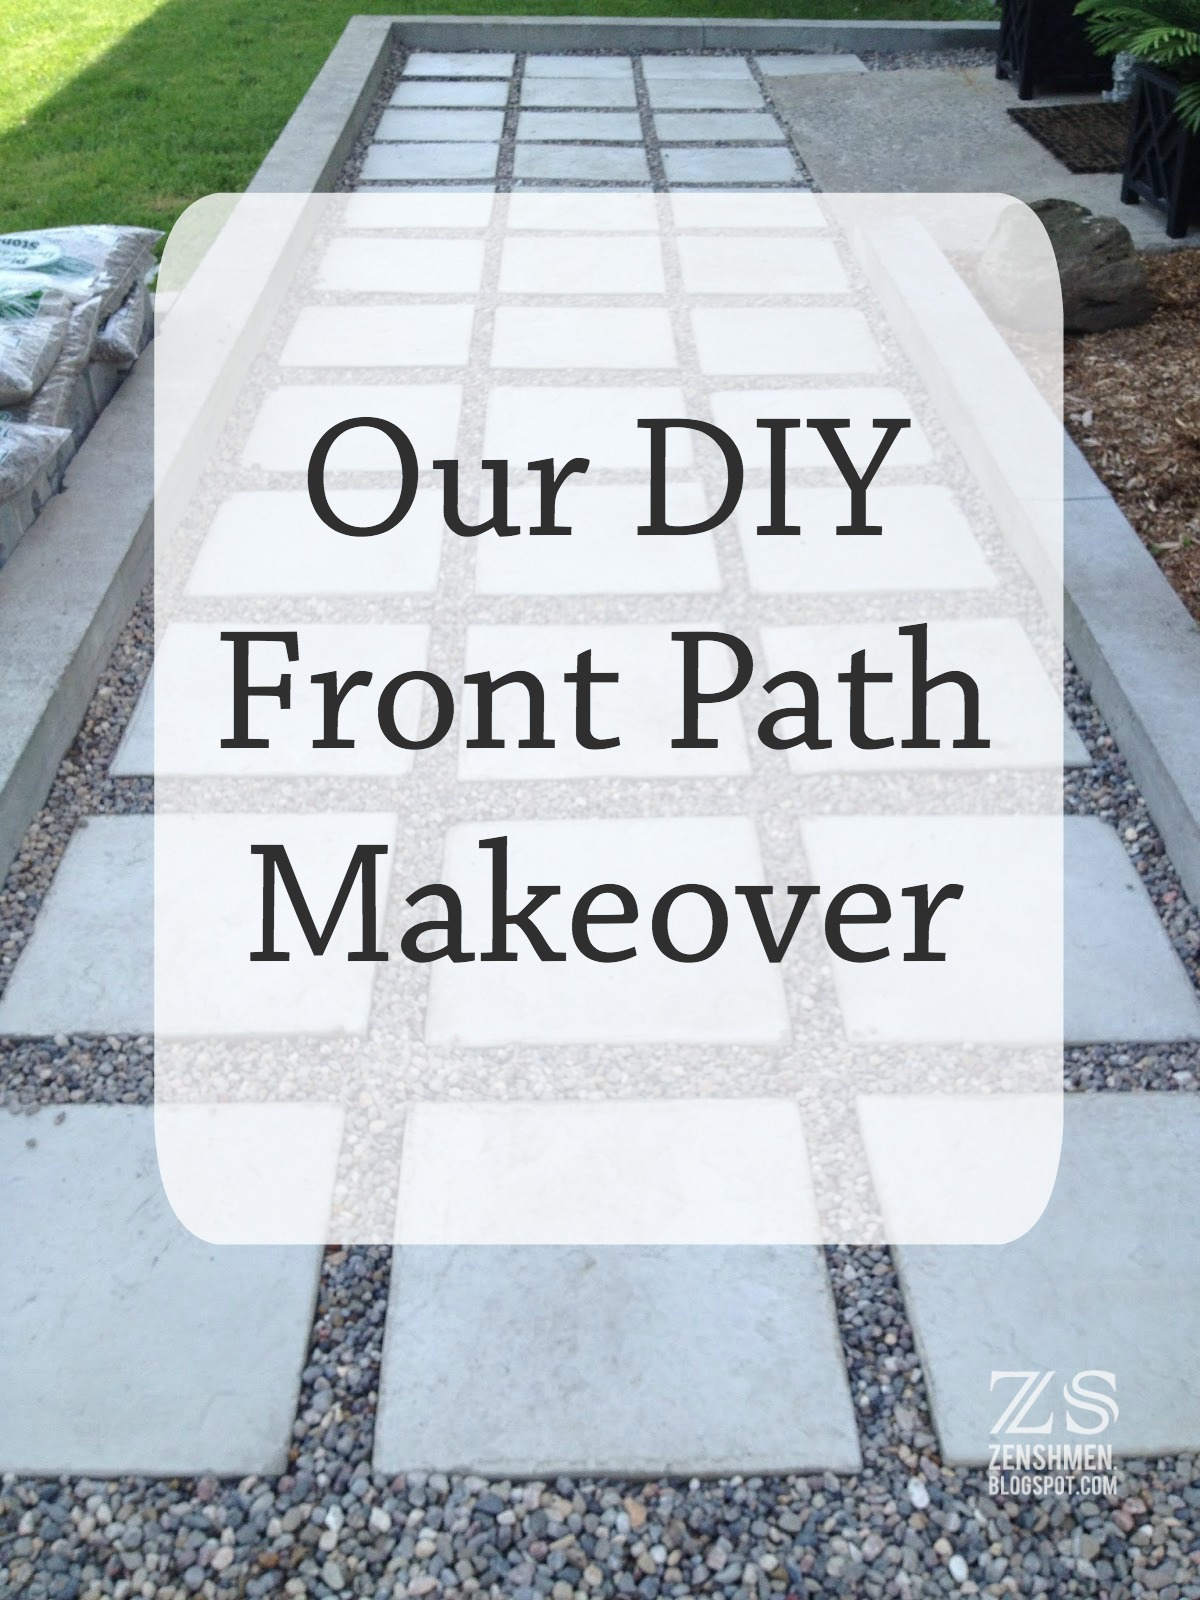 Zen shmen our diy front path makeover How to do a home makeover